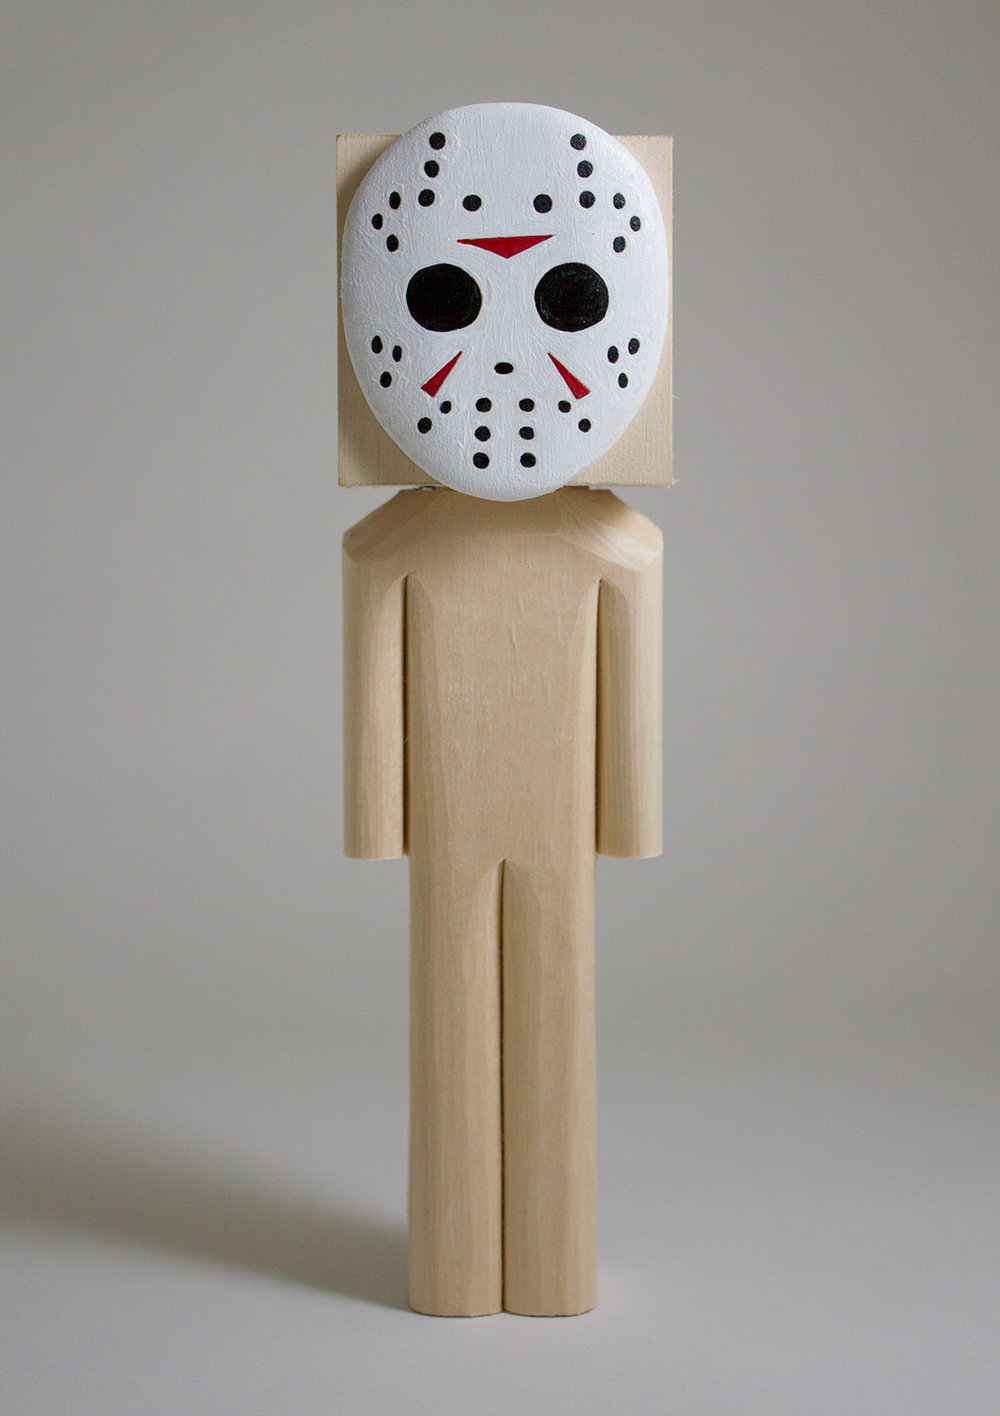 """Jason"" Basswood and Acrylic. 8.25 x 2.25 x 2.5 inches. CSK 010G"